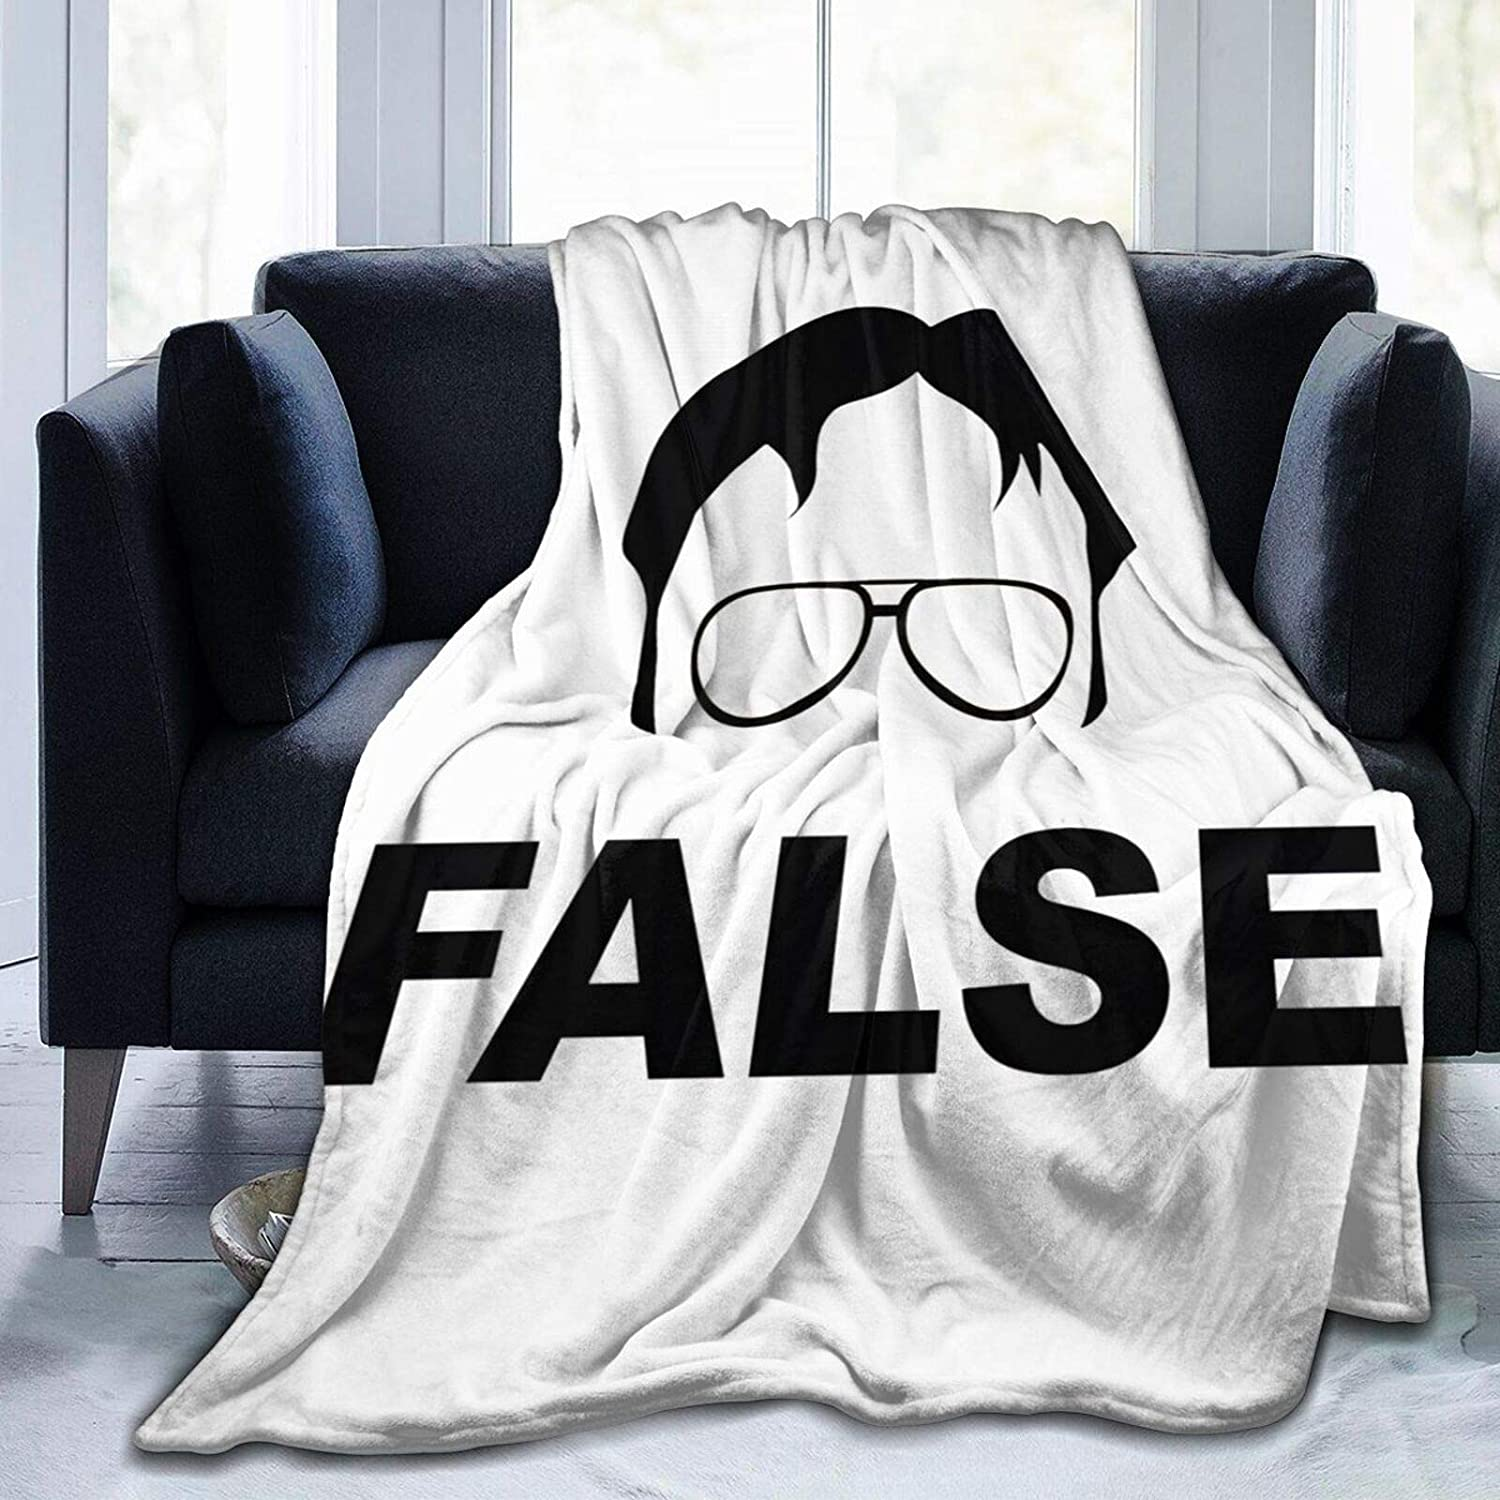 ATSH The Office Dwight Schrute False Large Flannel Throw Blanket Soft Warm Lightweight and Decorative Three Sizes to Choose from